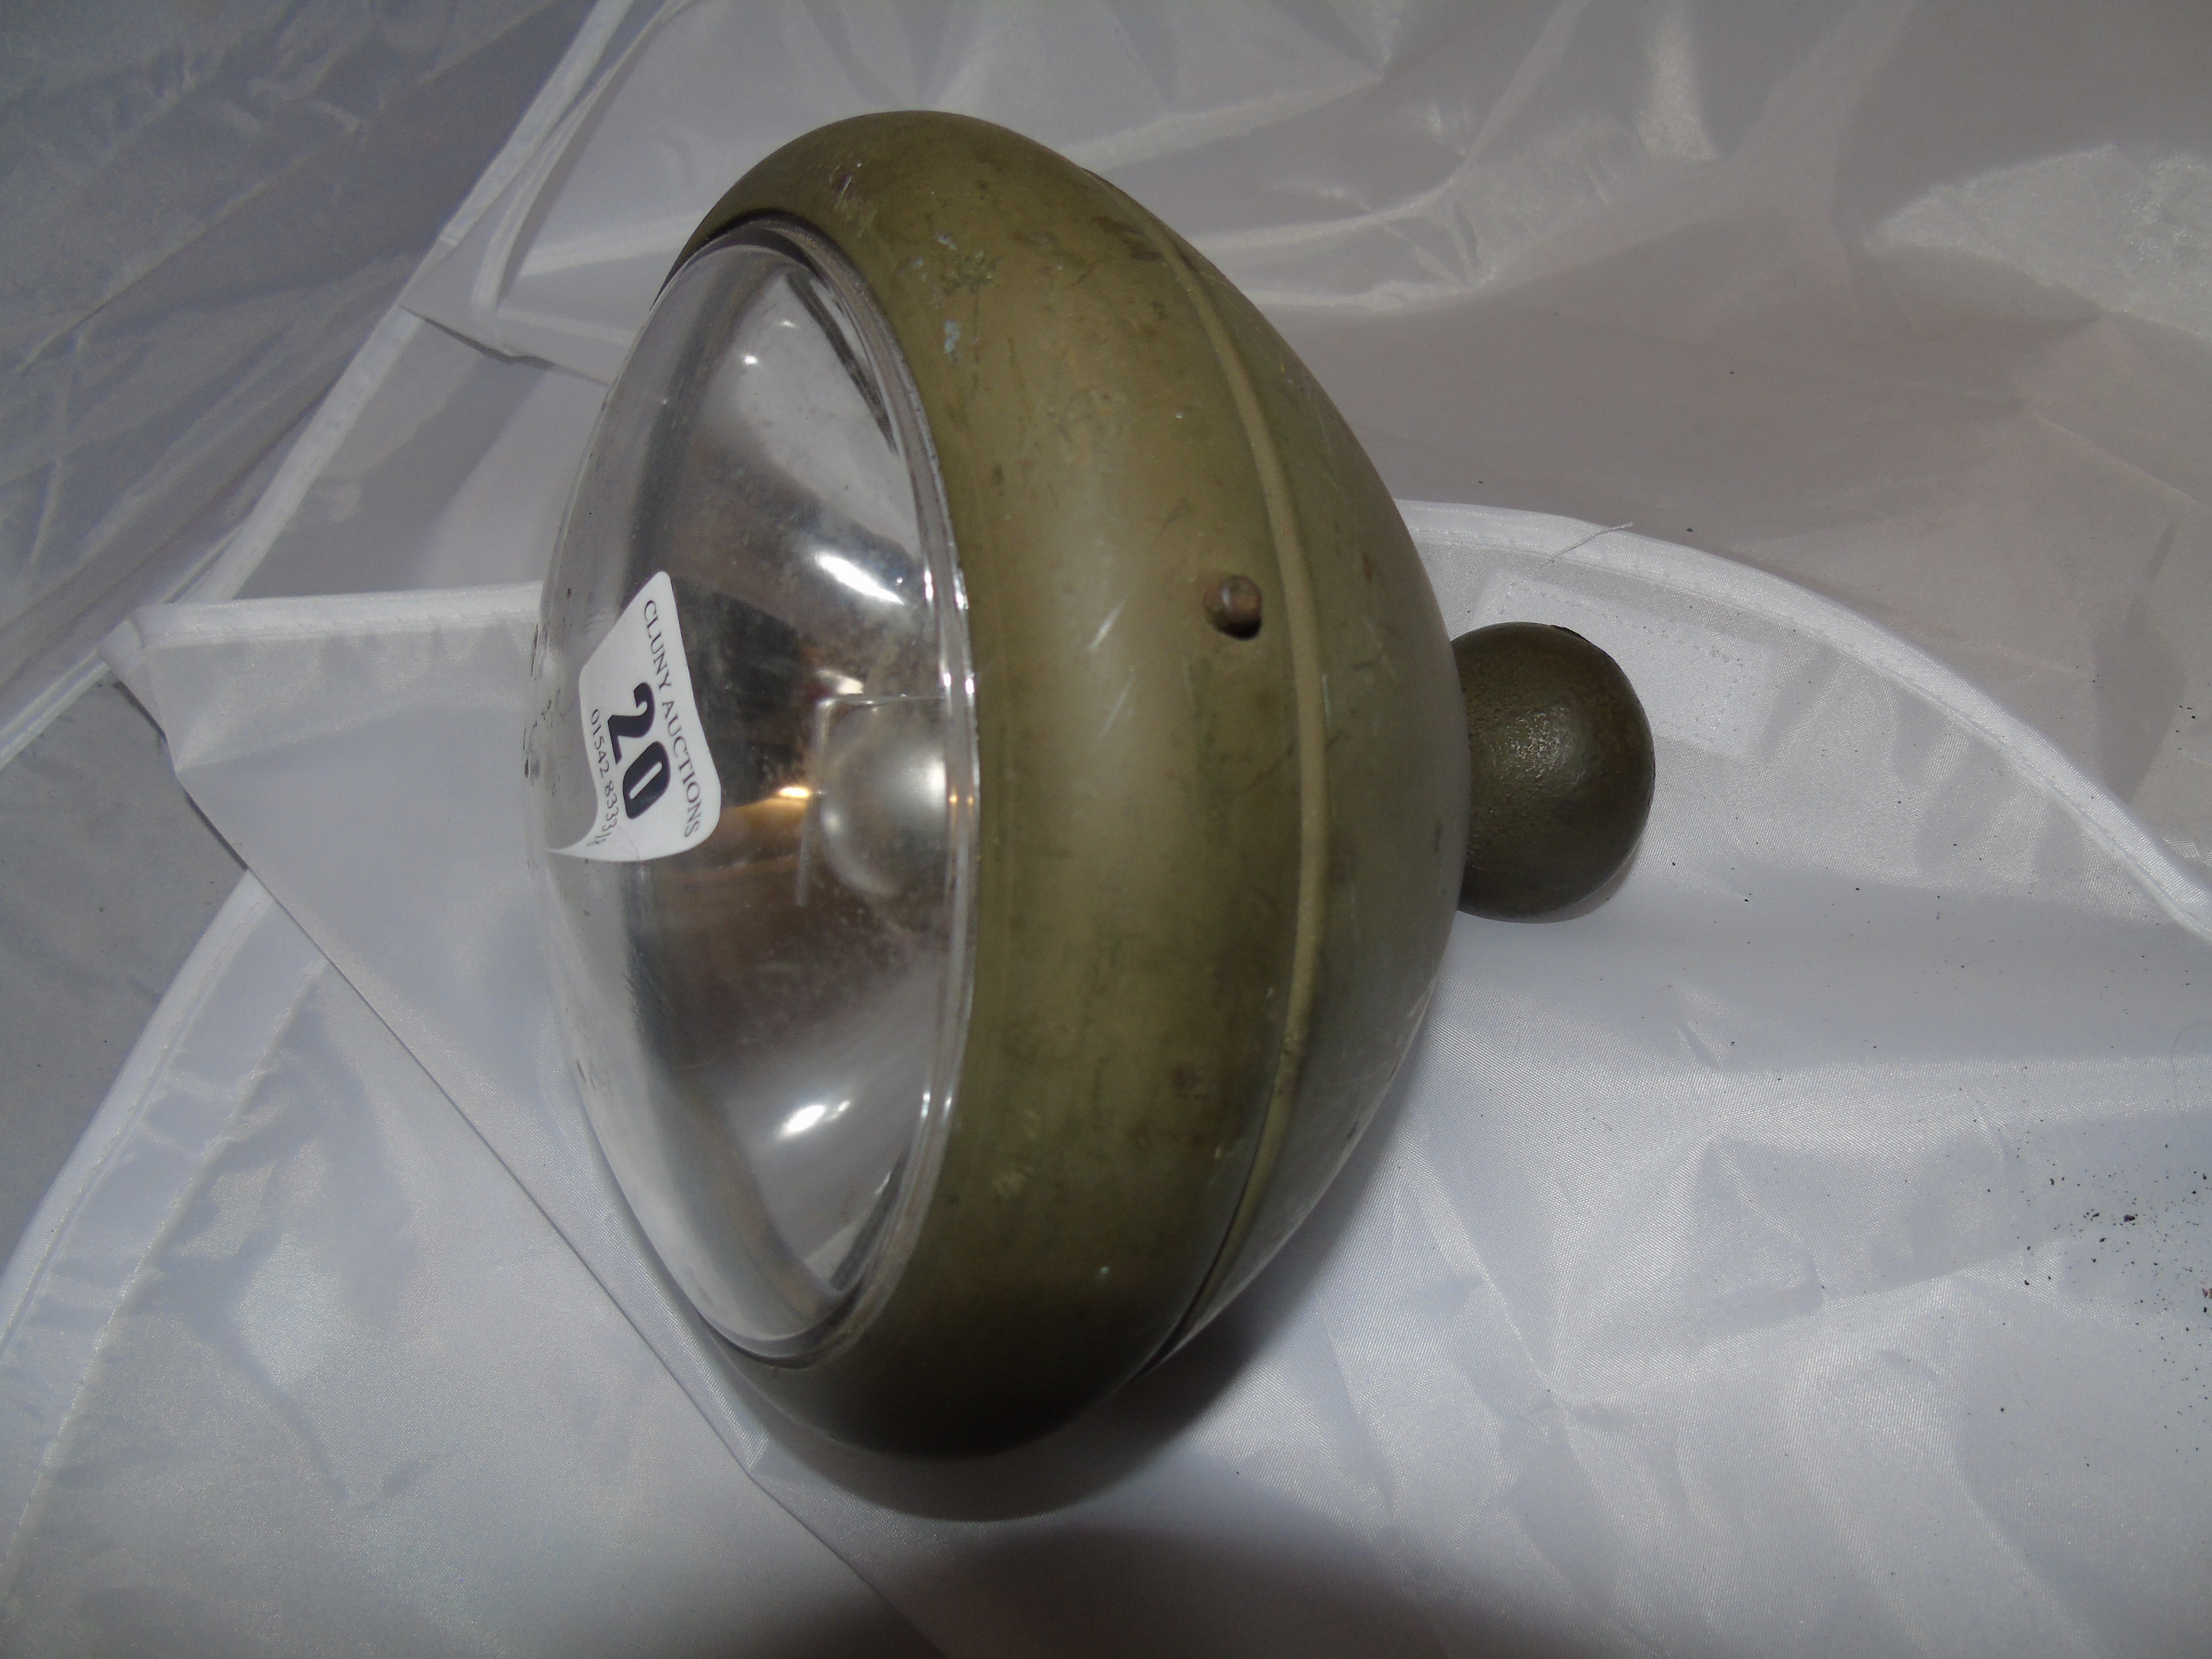 Lot 20 - MILITARY MAZDA SPOT & SIGNAL LAMP & ONE OTHER BRASS LAMP EST [£20-£40]